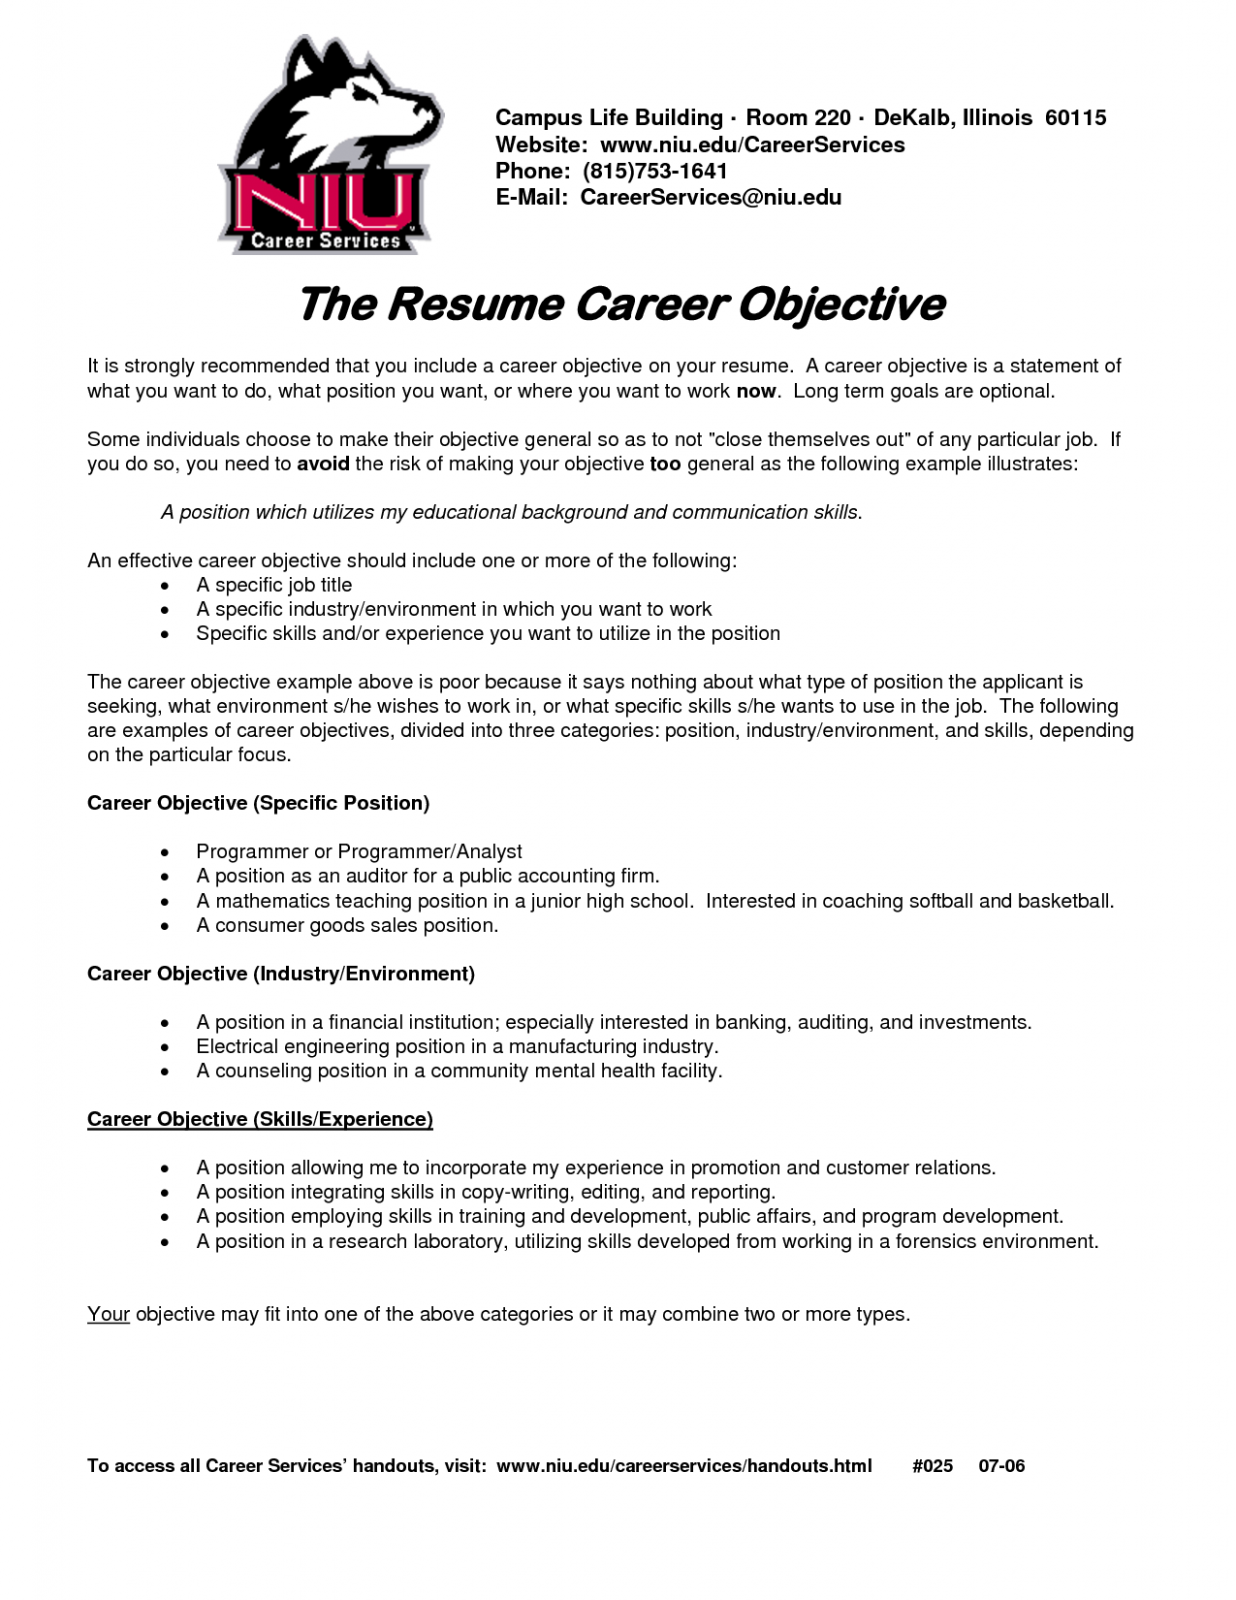 On The Job Training Resume Objectives In 2021 Resume Objective Statement Examples Resume Objective Sample Good Objective For Resume